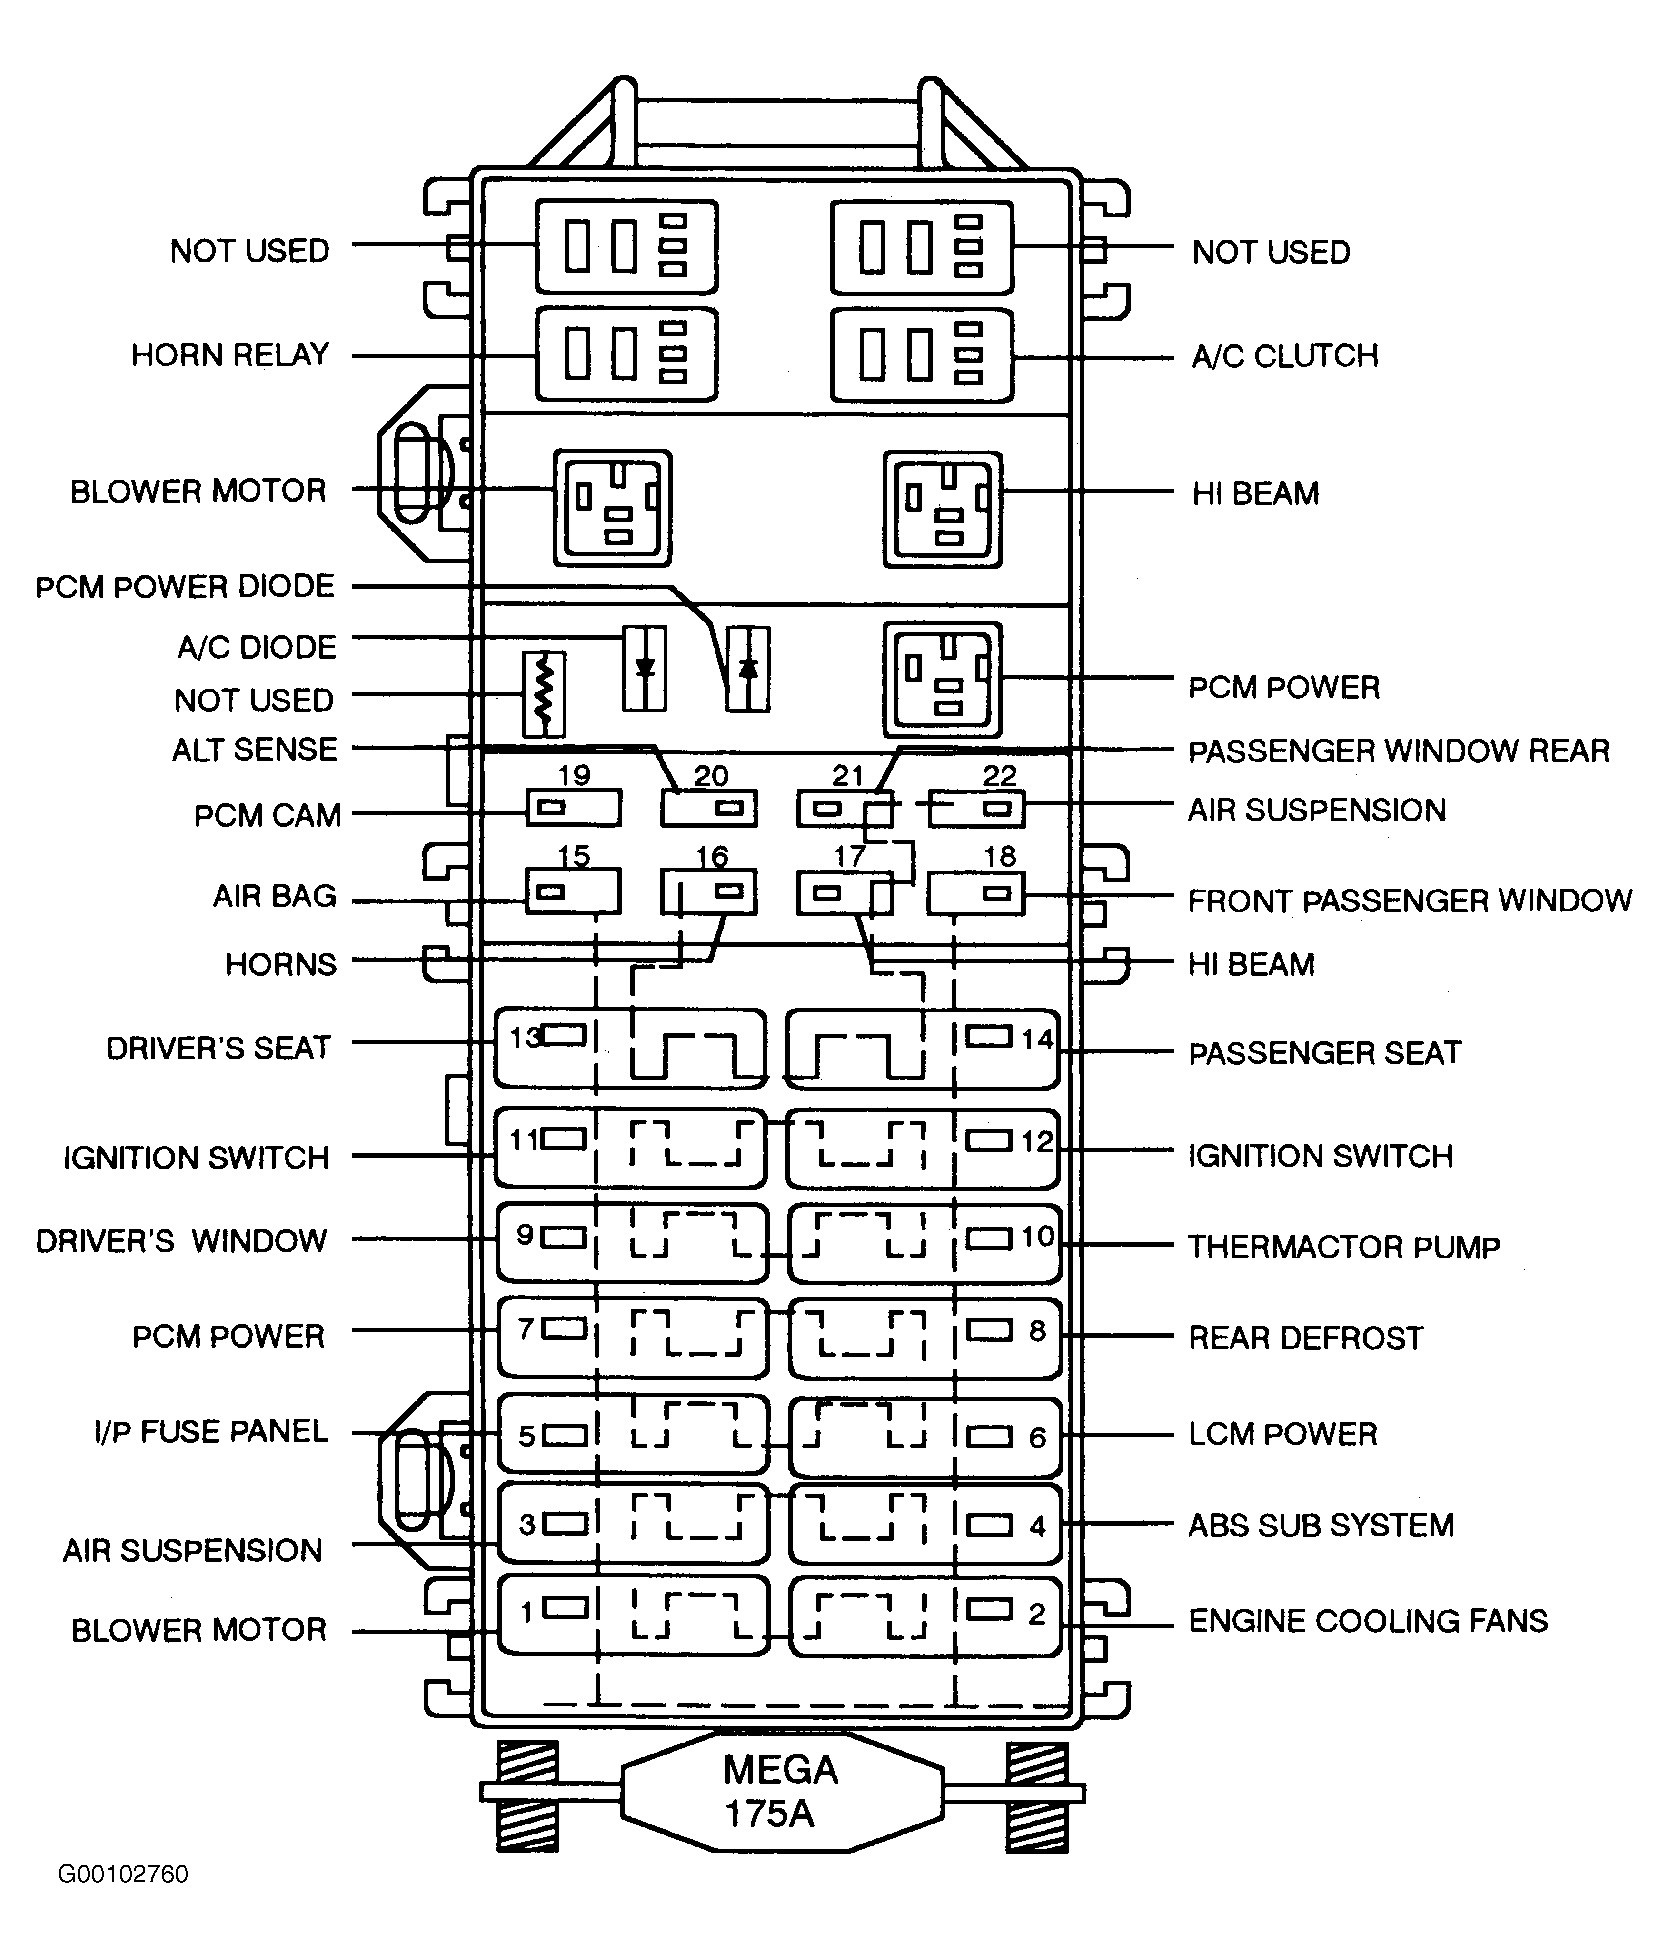 small resolution of for a 2000 lincoln town car fuse diagram interior explained wiring